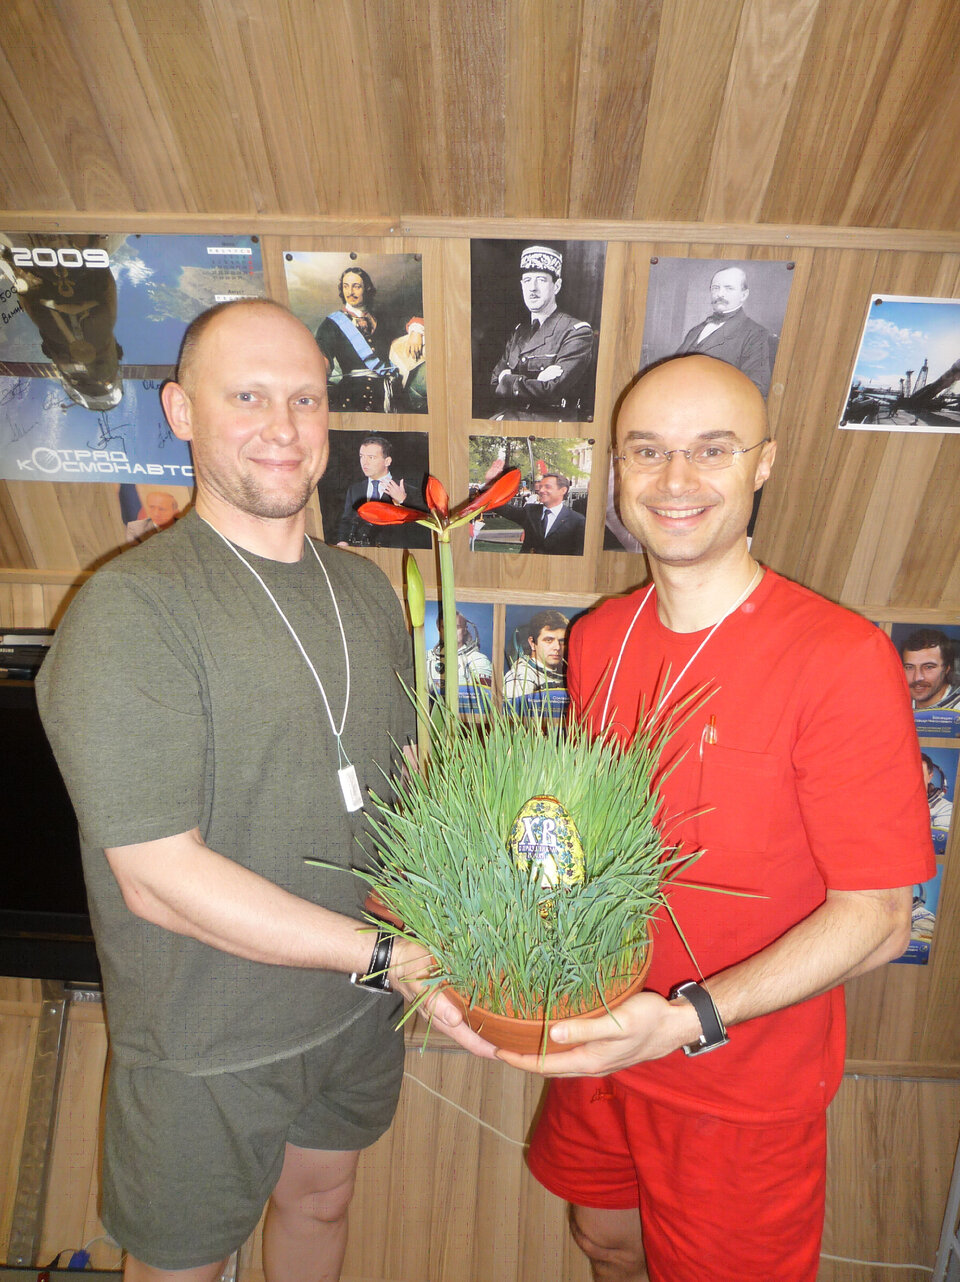 Egg hunting: Cyrille and Oleg find a 'space egg' on orthodox Easter